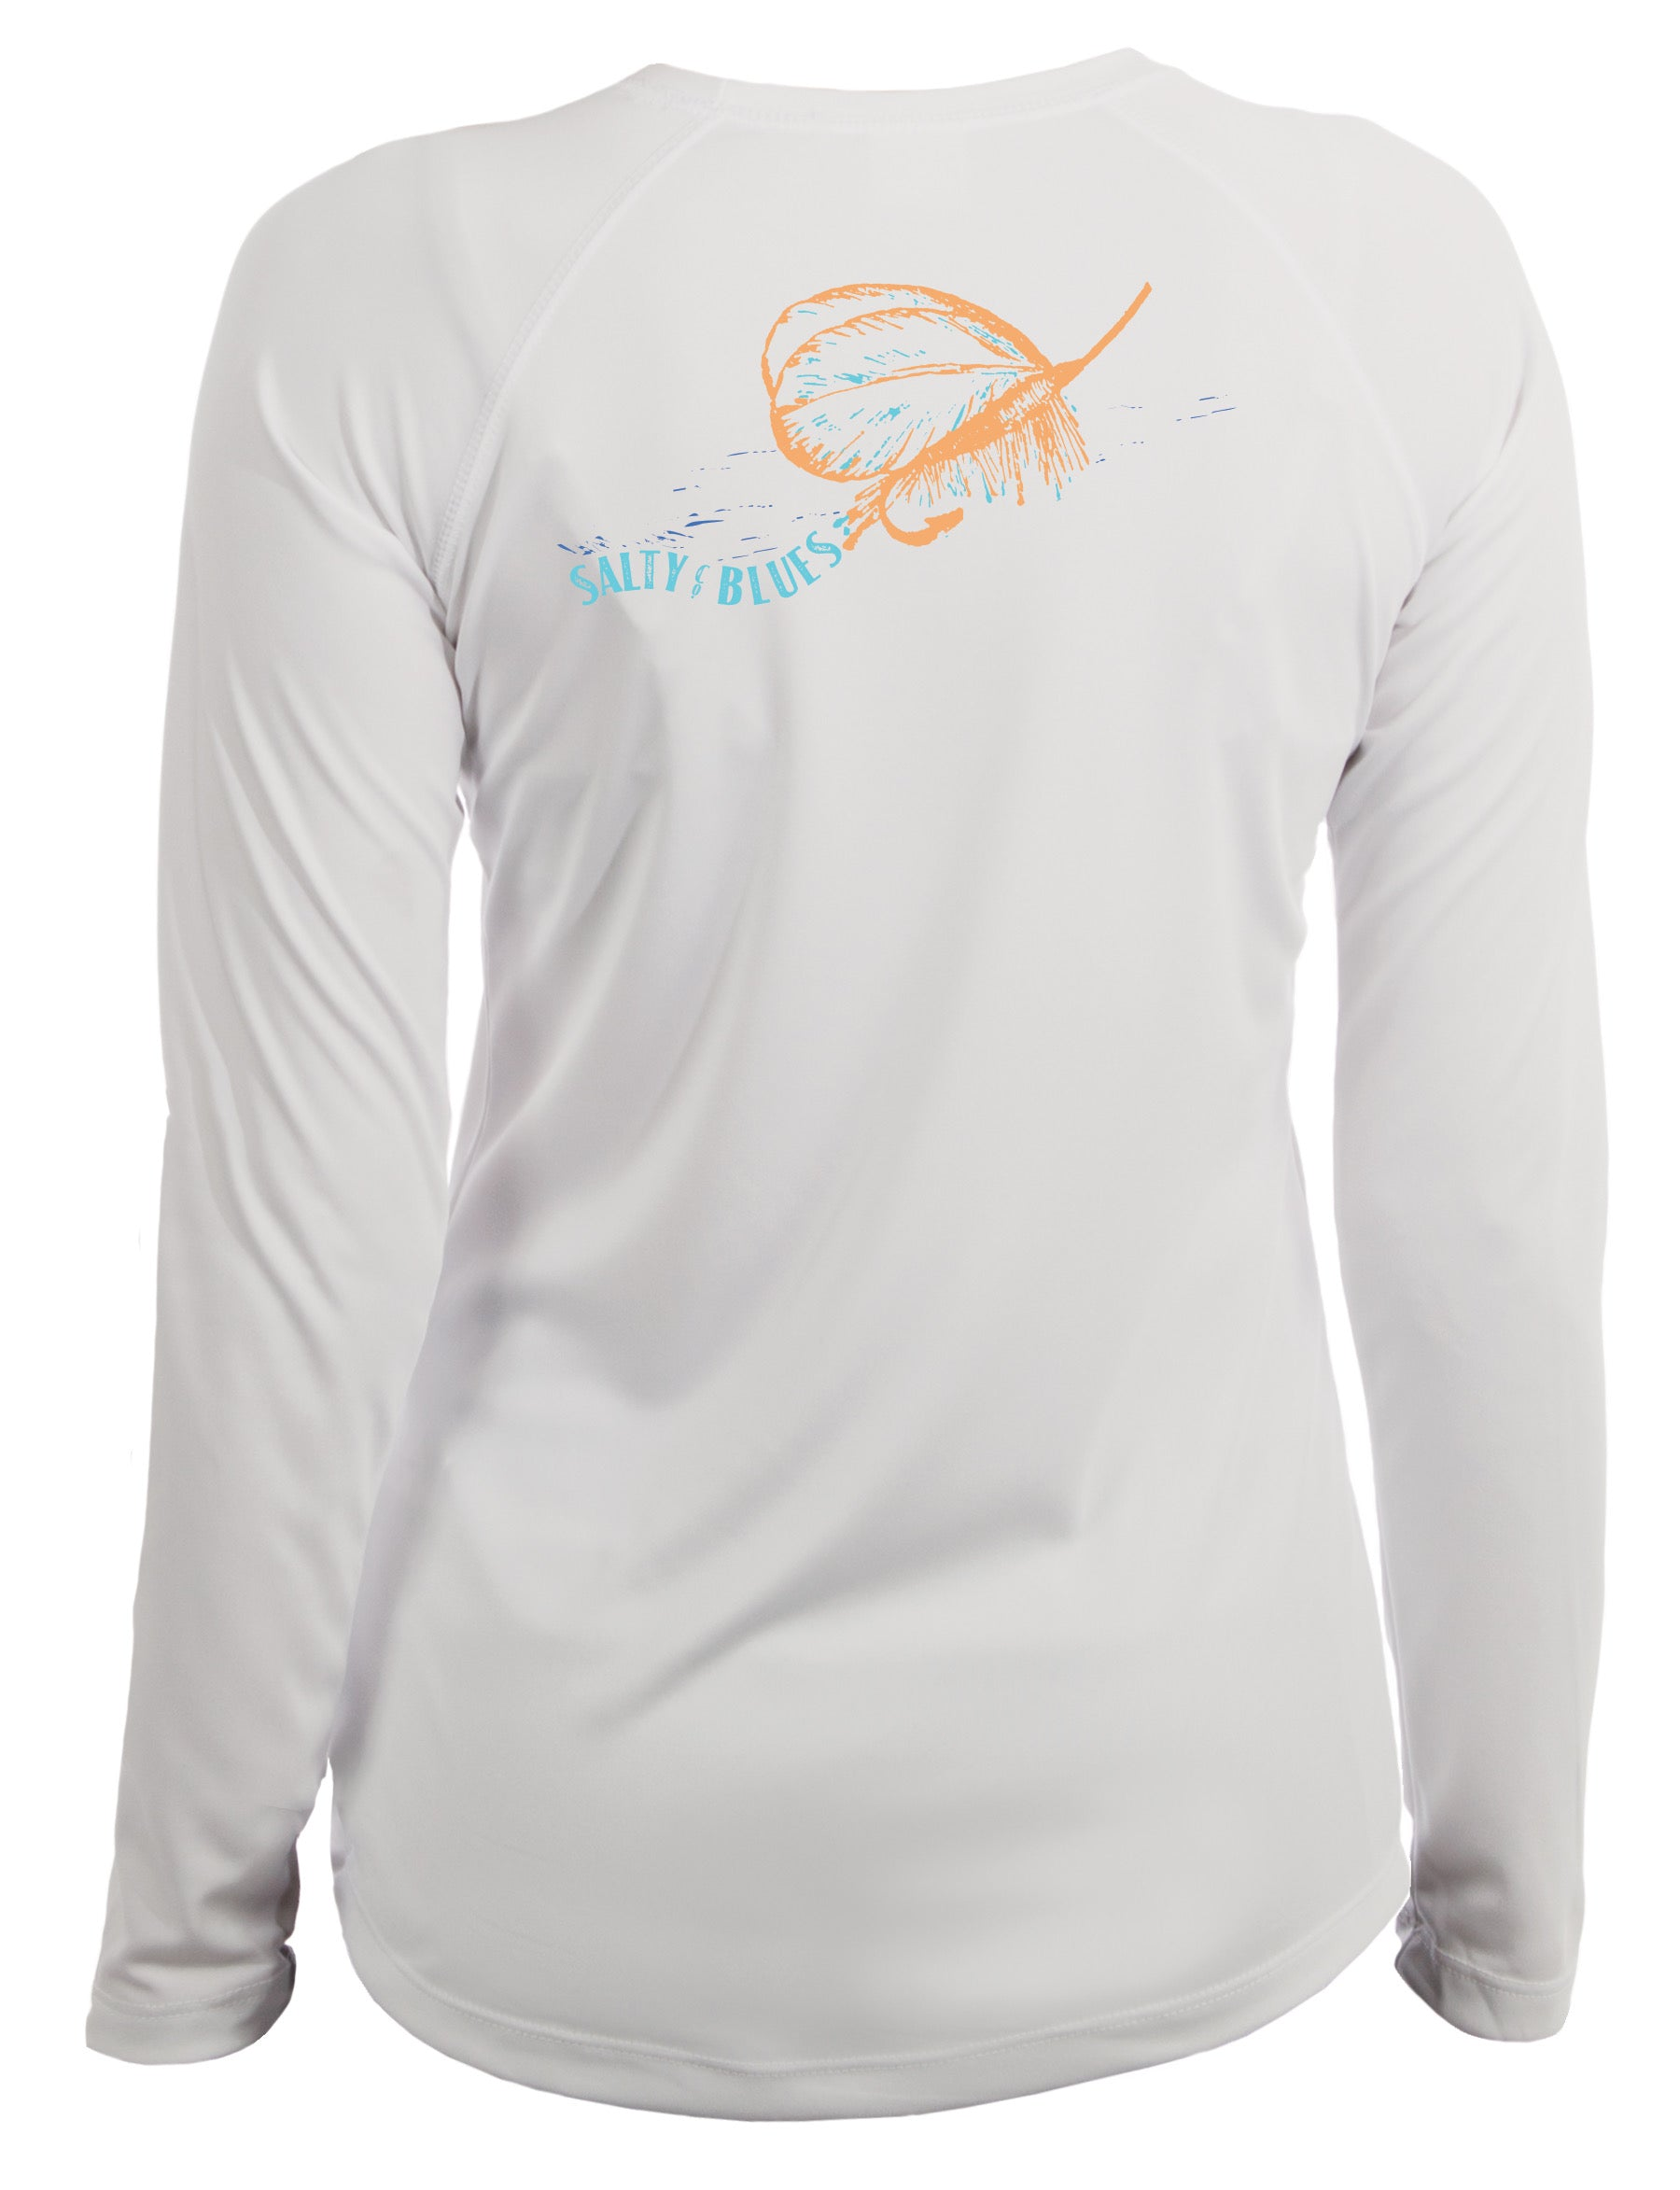 Lured Women's Performance - Women's Performance Shirt - Latitudes & Attitudes LLC